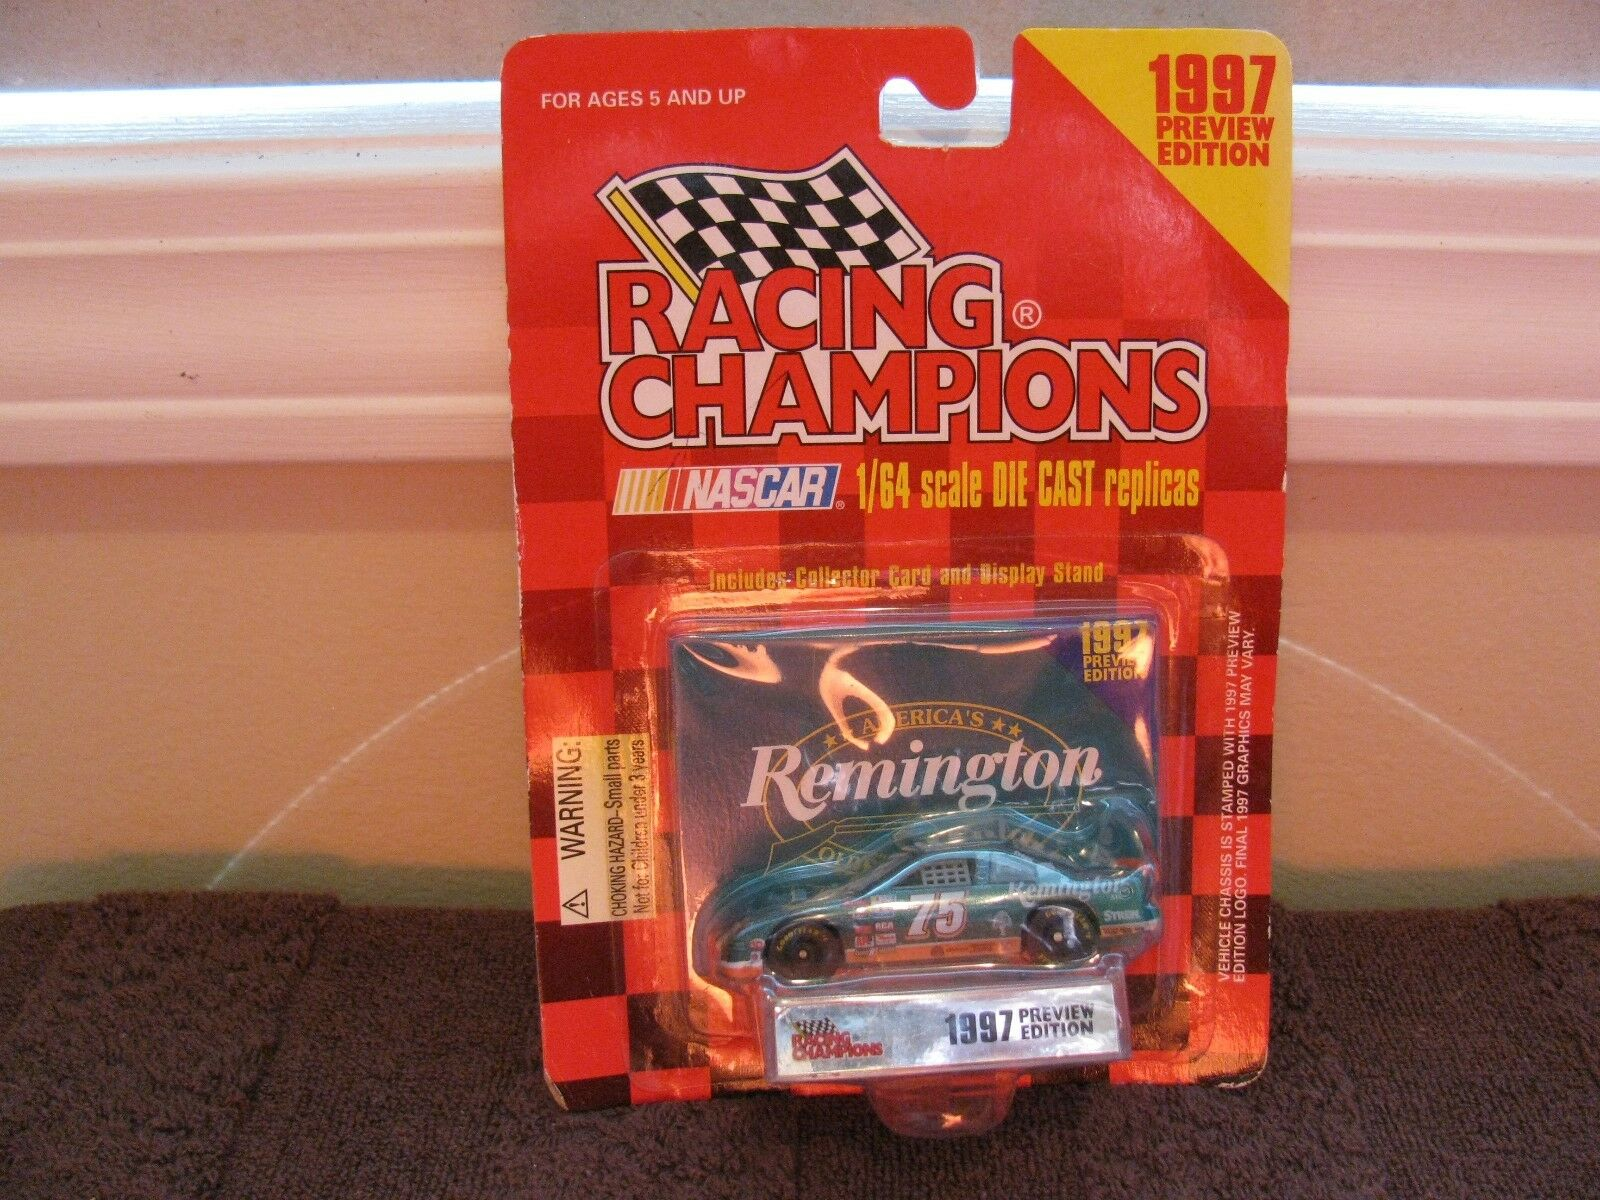 Racing Champions Remington Adgreenisement 1997 Preview Ed.1 64 Diecast Car